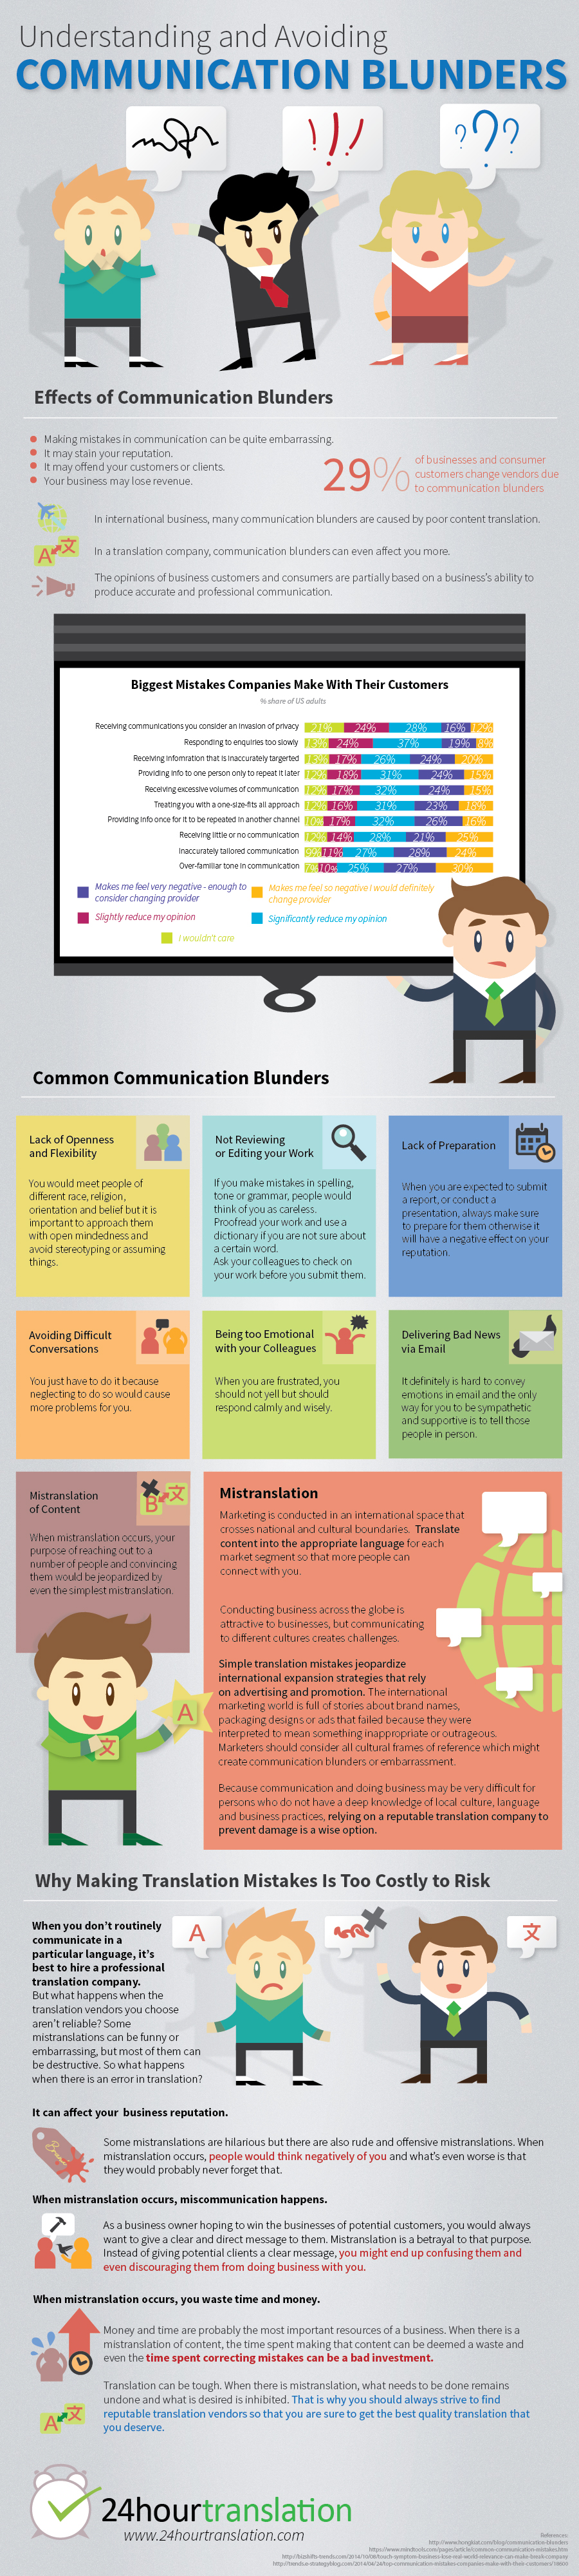 Communication Blunders: The Bane of Business - Infographic